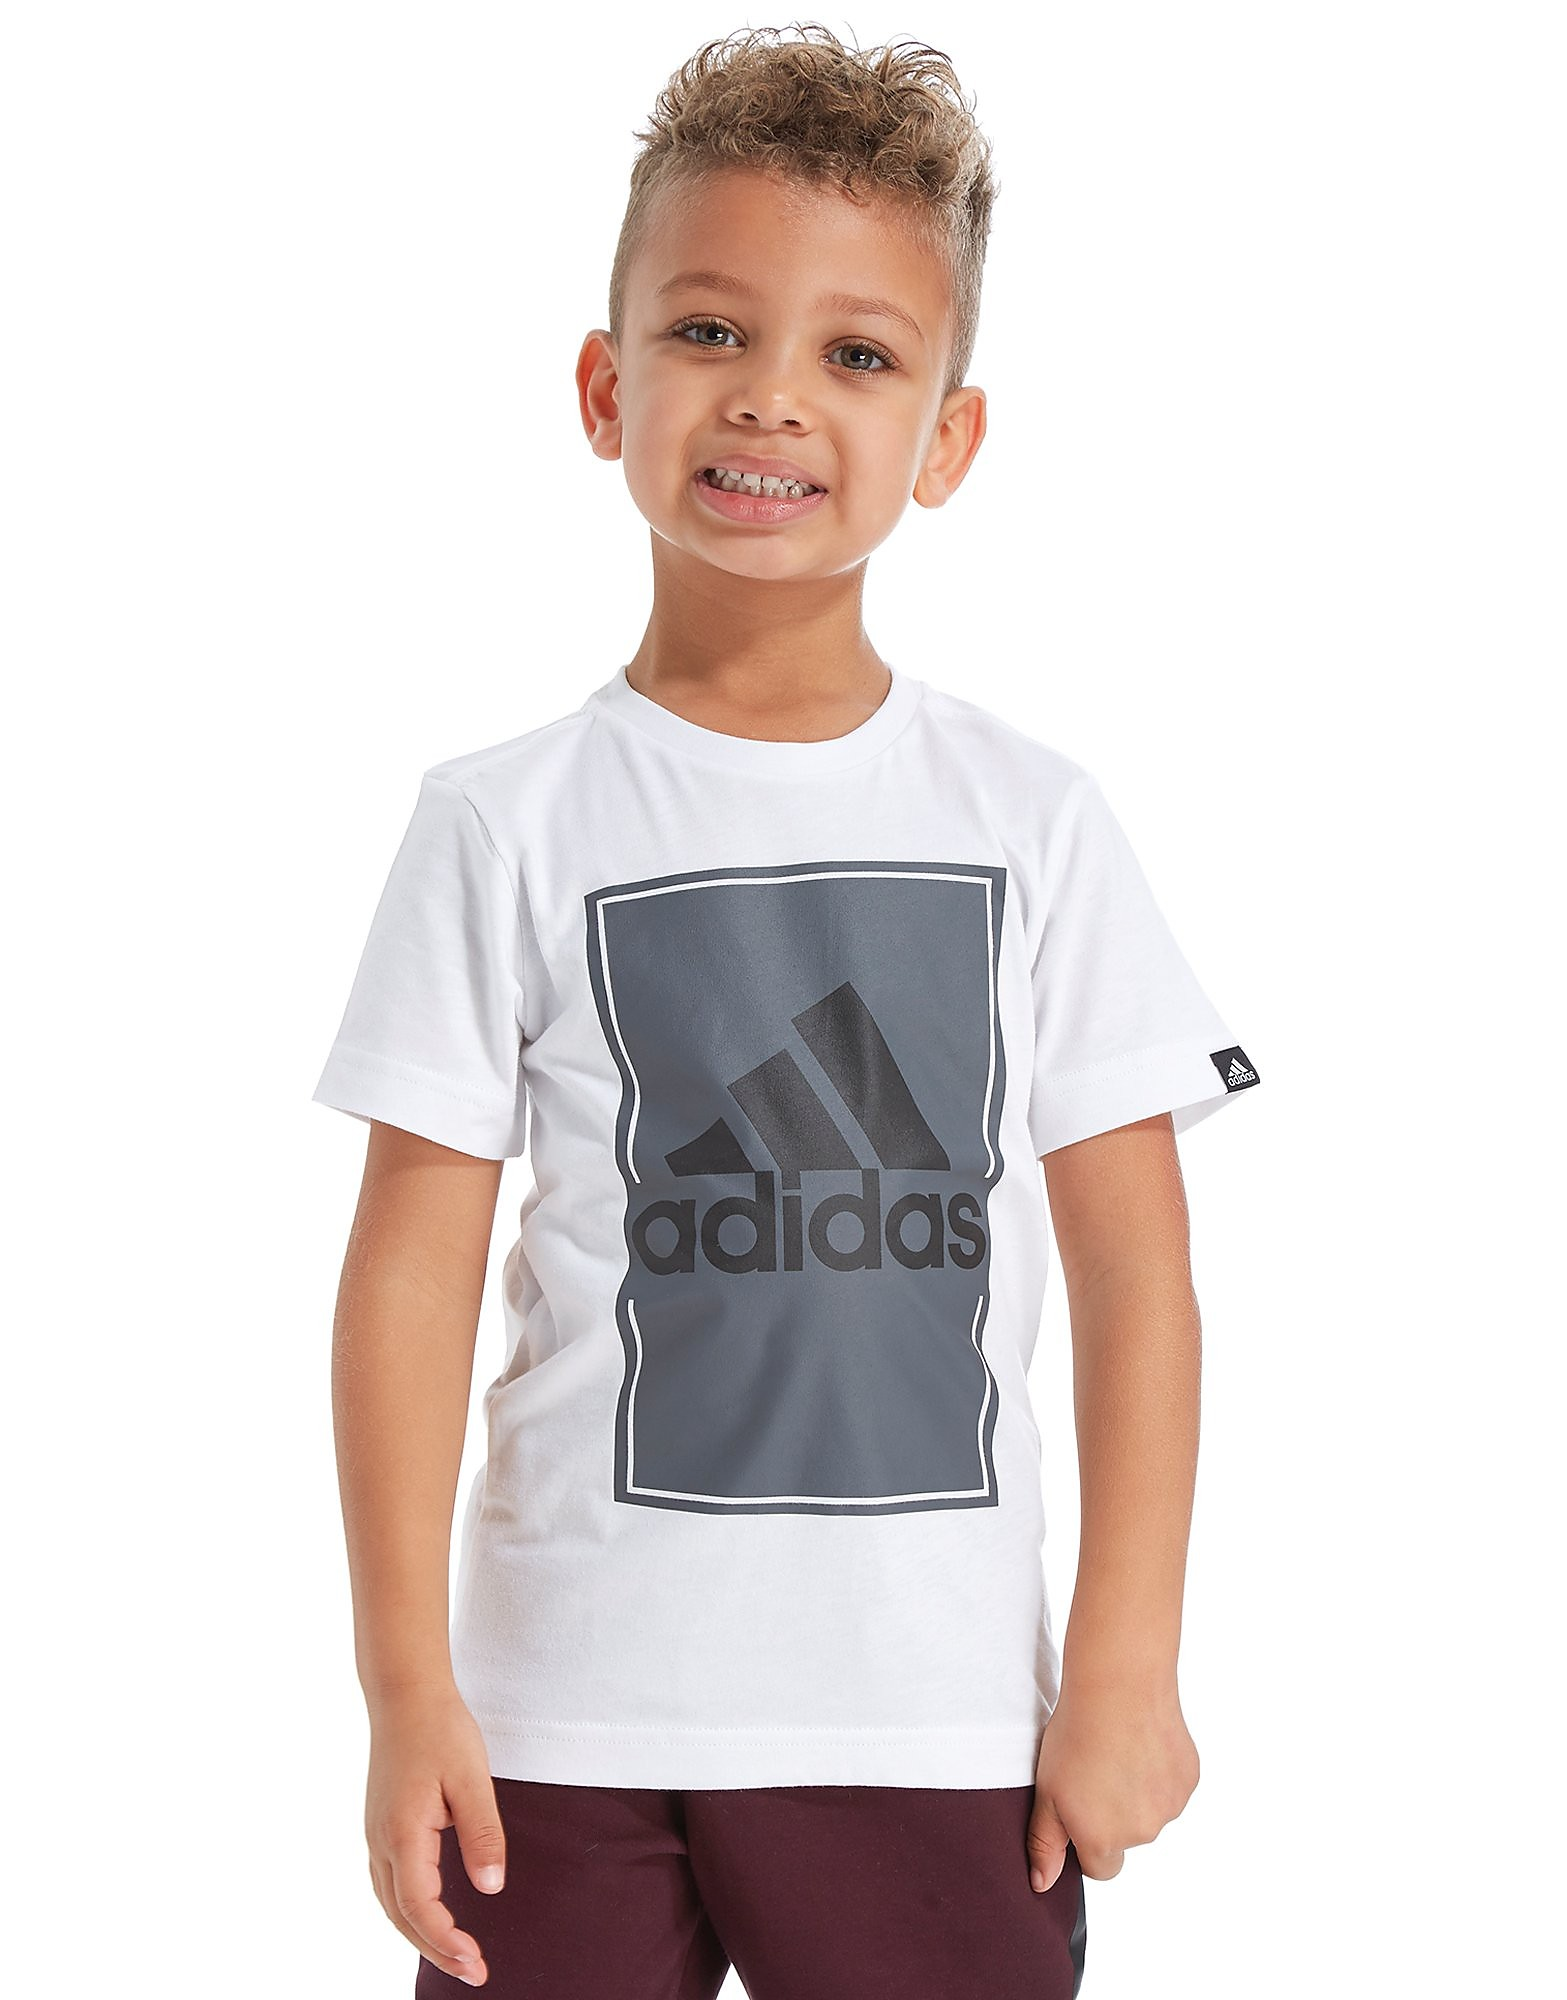 adidas Box T-Shirt Children